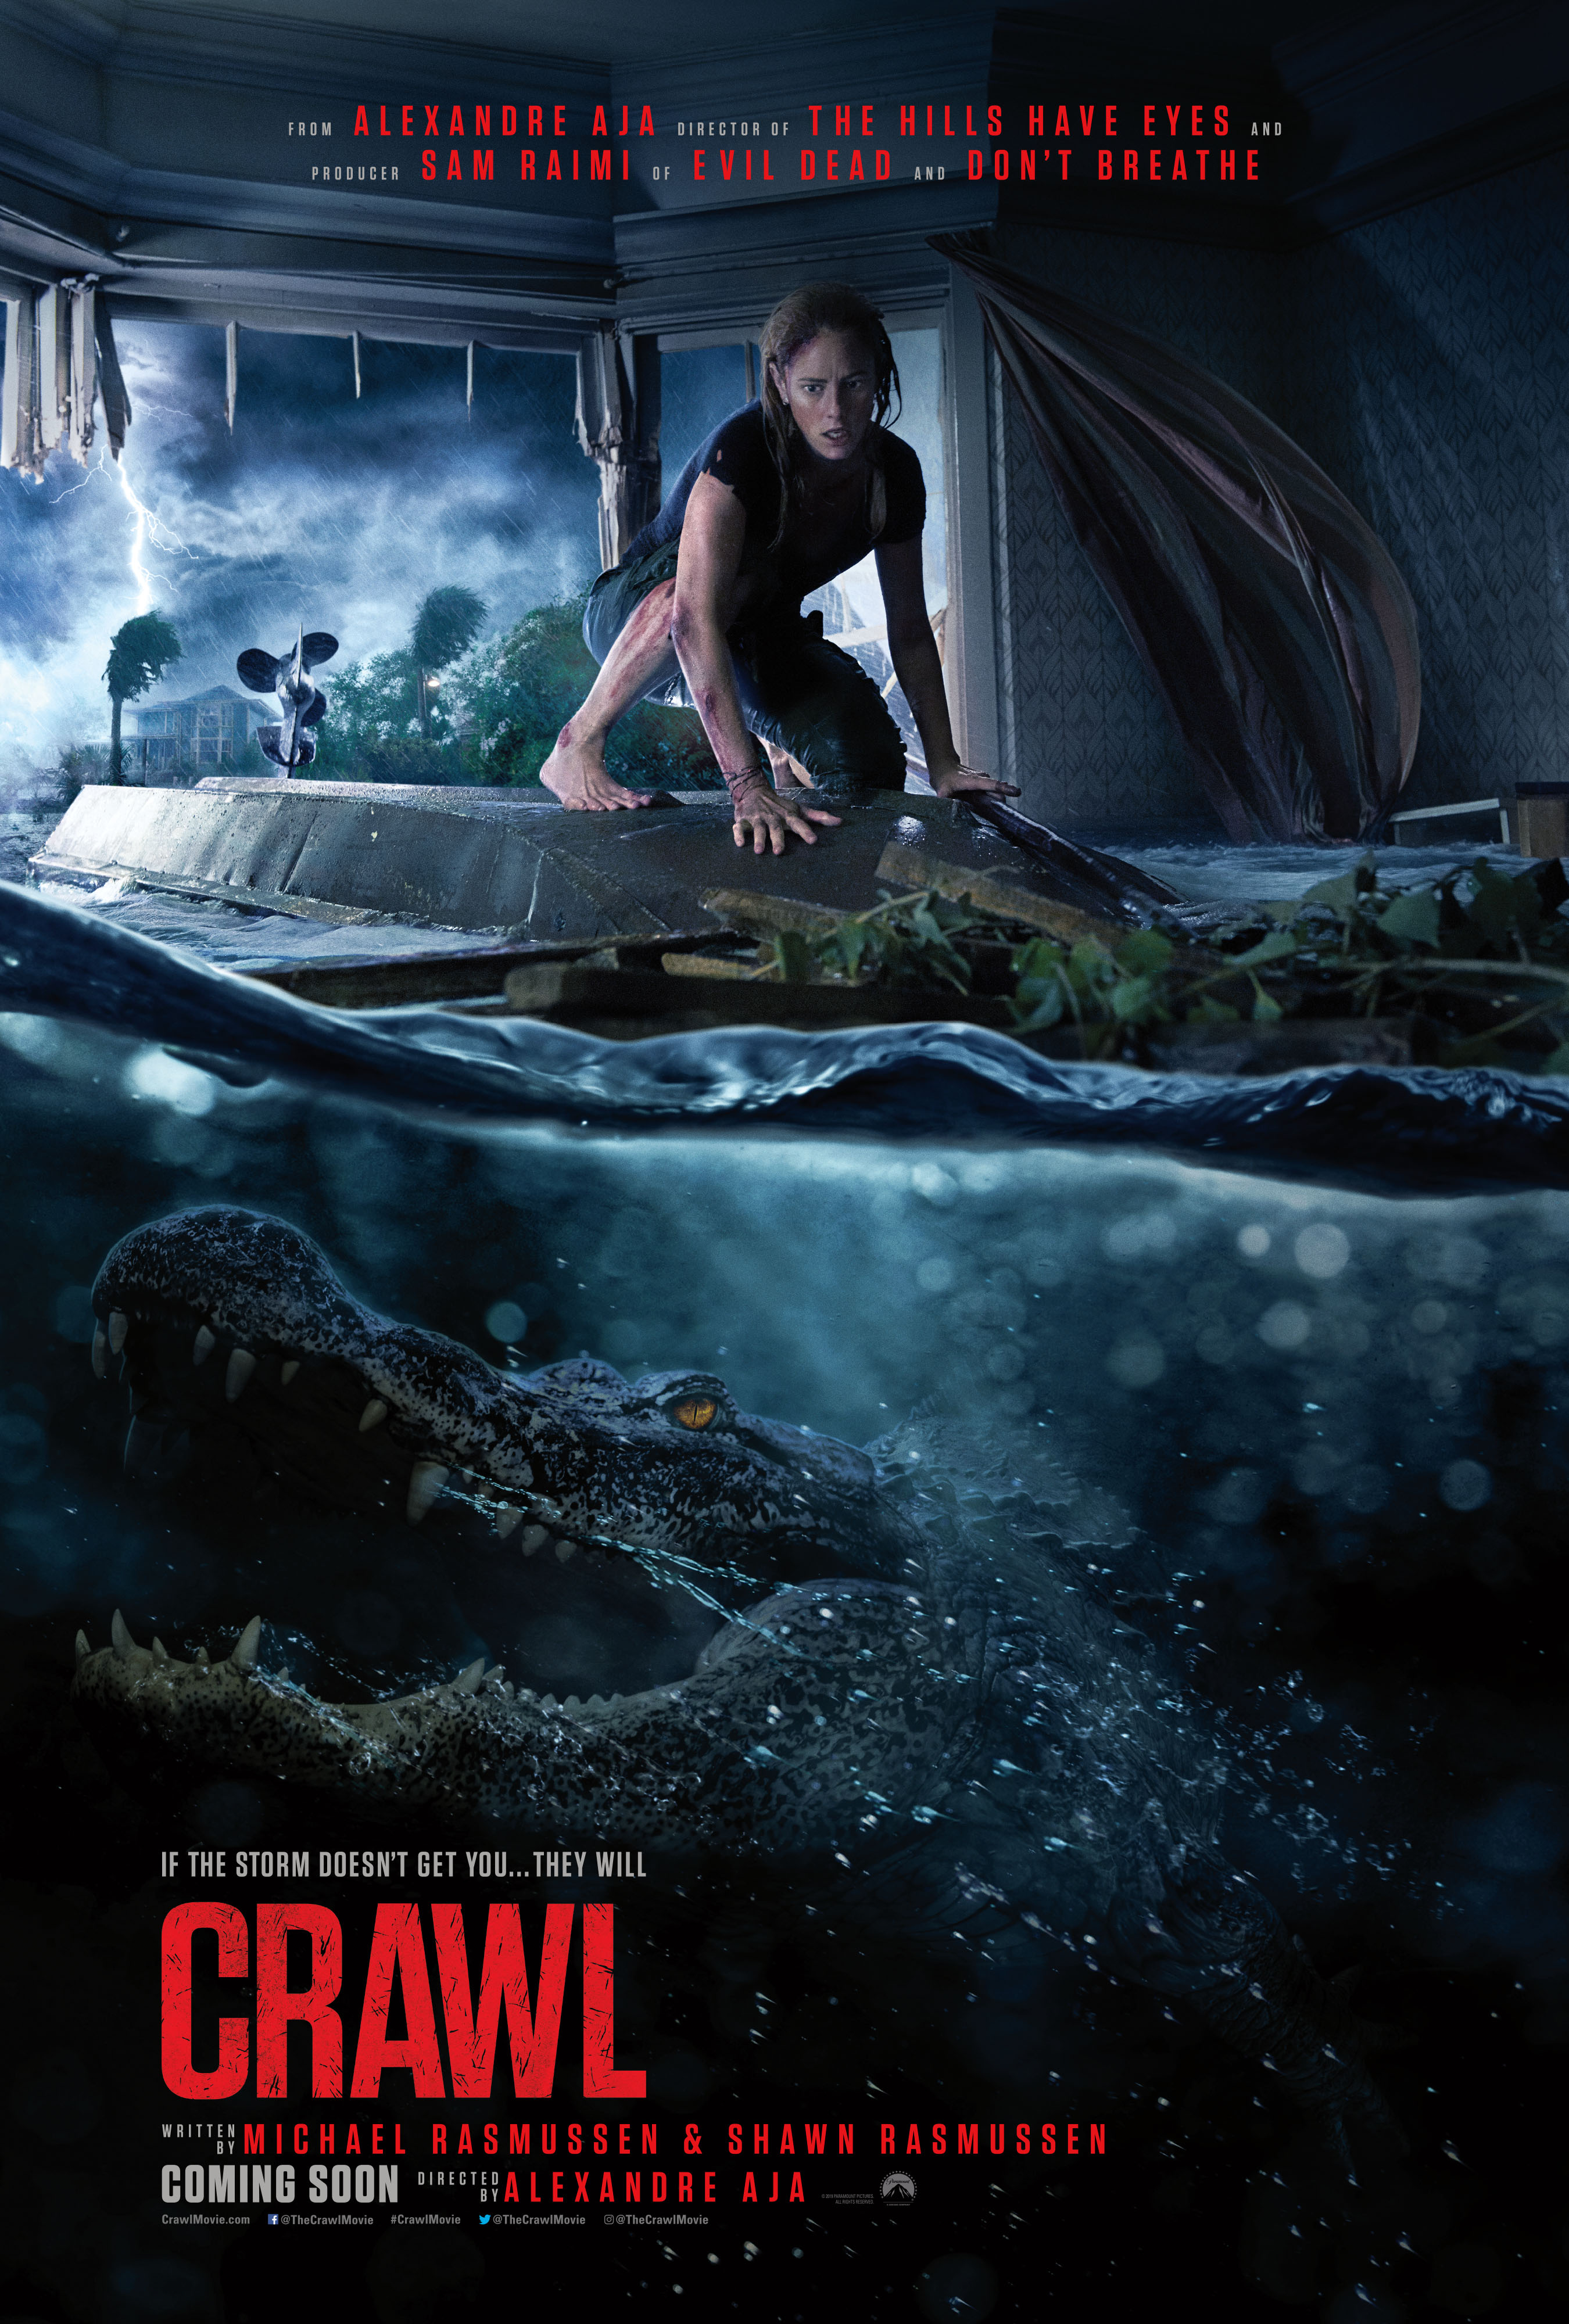 movie 2019 out now CRAWL MOVIE IS AVAILABLE TO CRAWL INTO YOUR HOME NOW ON BLU